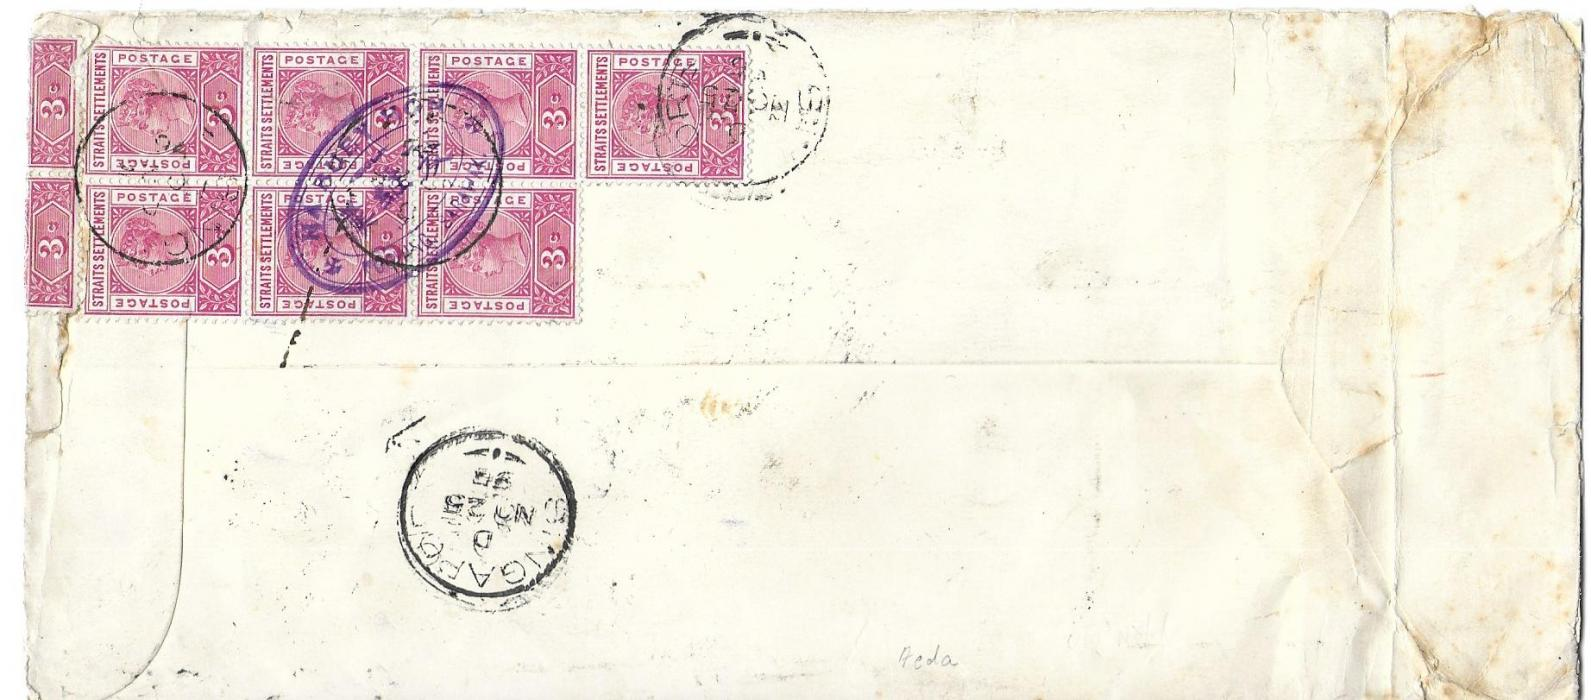 Sarawak 1896 (23 Nov) registered �Myerscough� combination cover to London franked 1895 Sir Charles Brooke 2c. pair and three singles tied Sarawak cds of 1 DE and Straits Settlements 3c. blocks of  8 and 7, the block of eight folded over to reverse with Singapore NO 25 cds, further Sarawak cds on front together with SARAWAK R circular handstamp. All the stamps have also been cancelled by oval company chop HA BUEY HON Kuching Sarawak. Some slight faults, a striking cover.